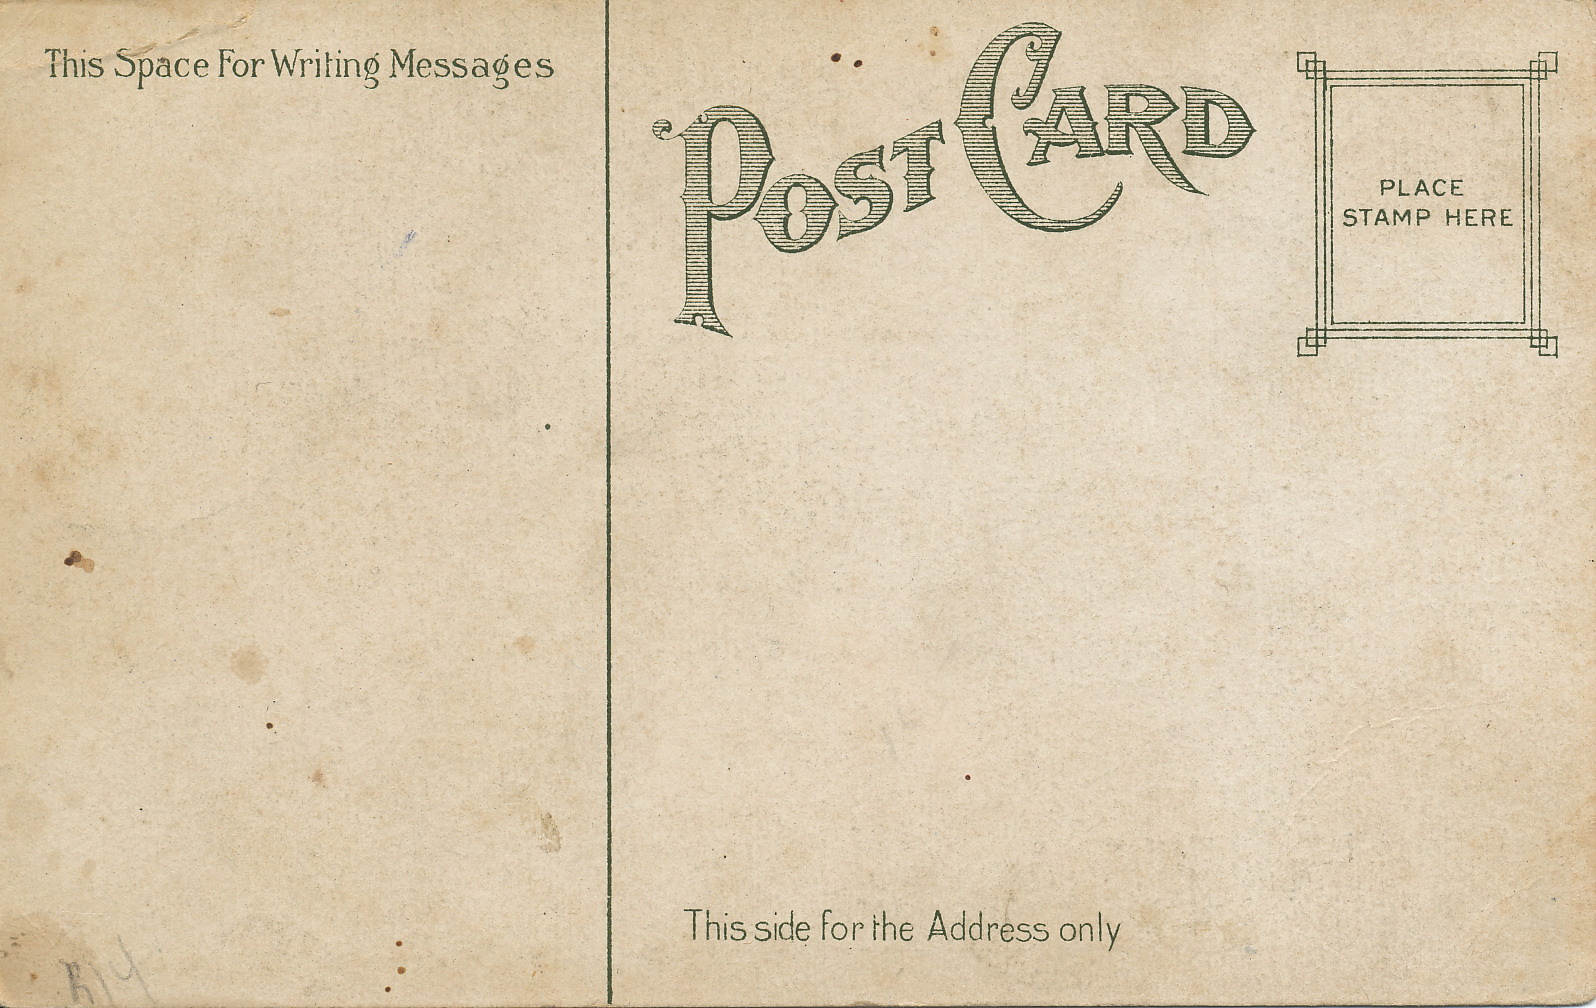 Vintage postcard template photoshop hot girls wallpaper for Back of postcard template photoshop